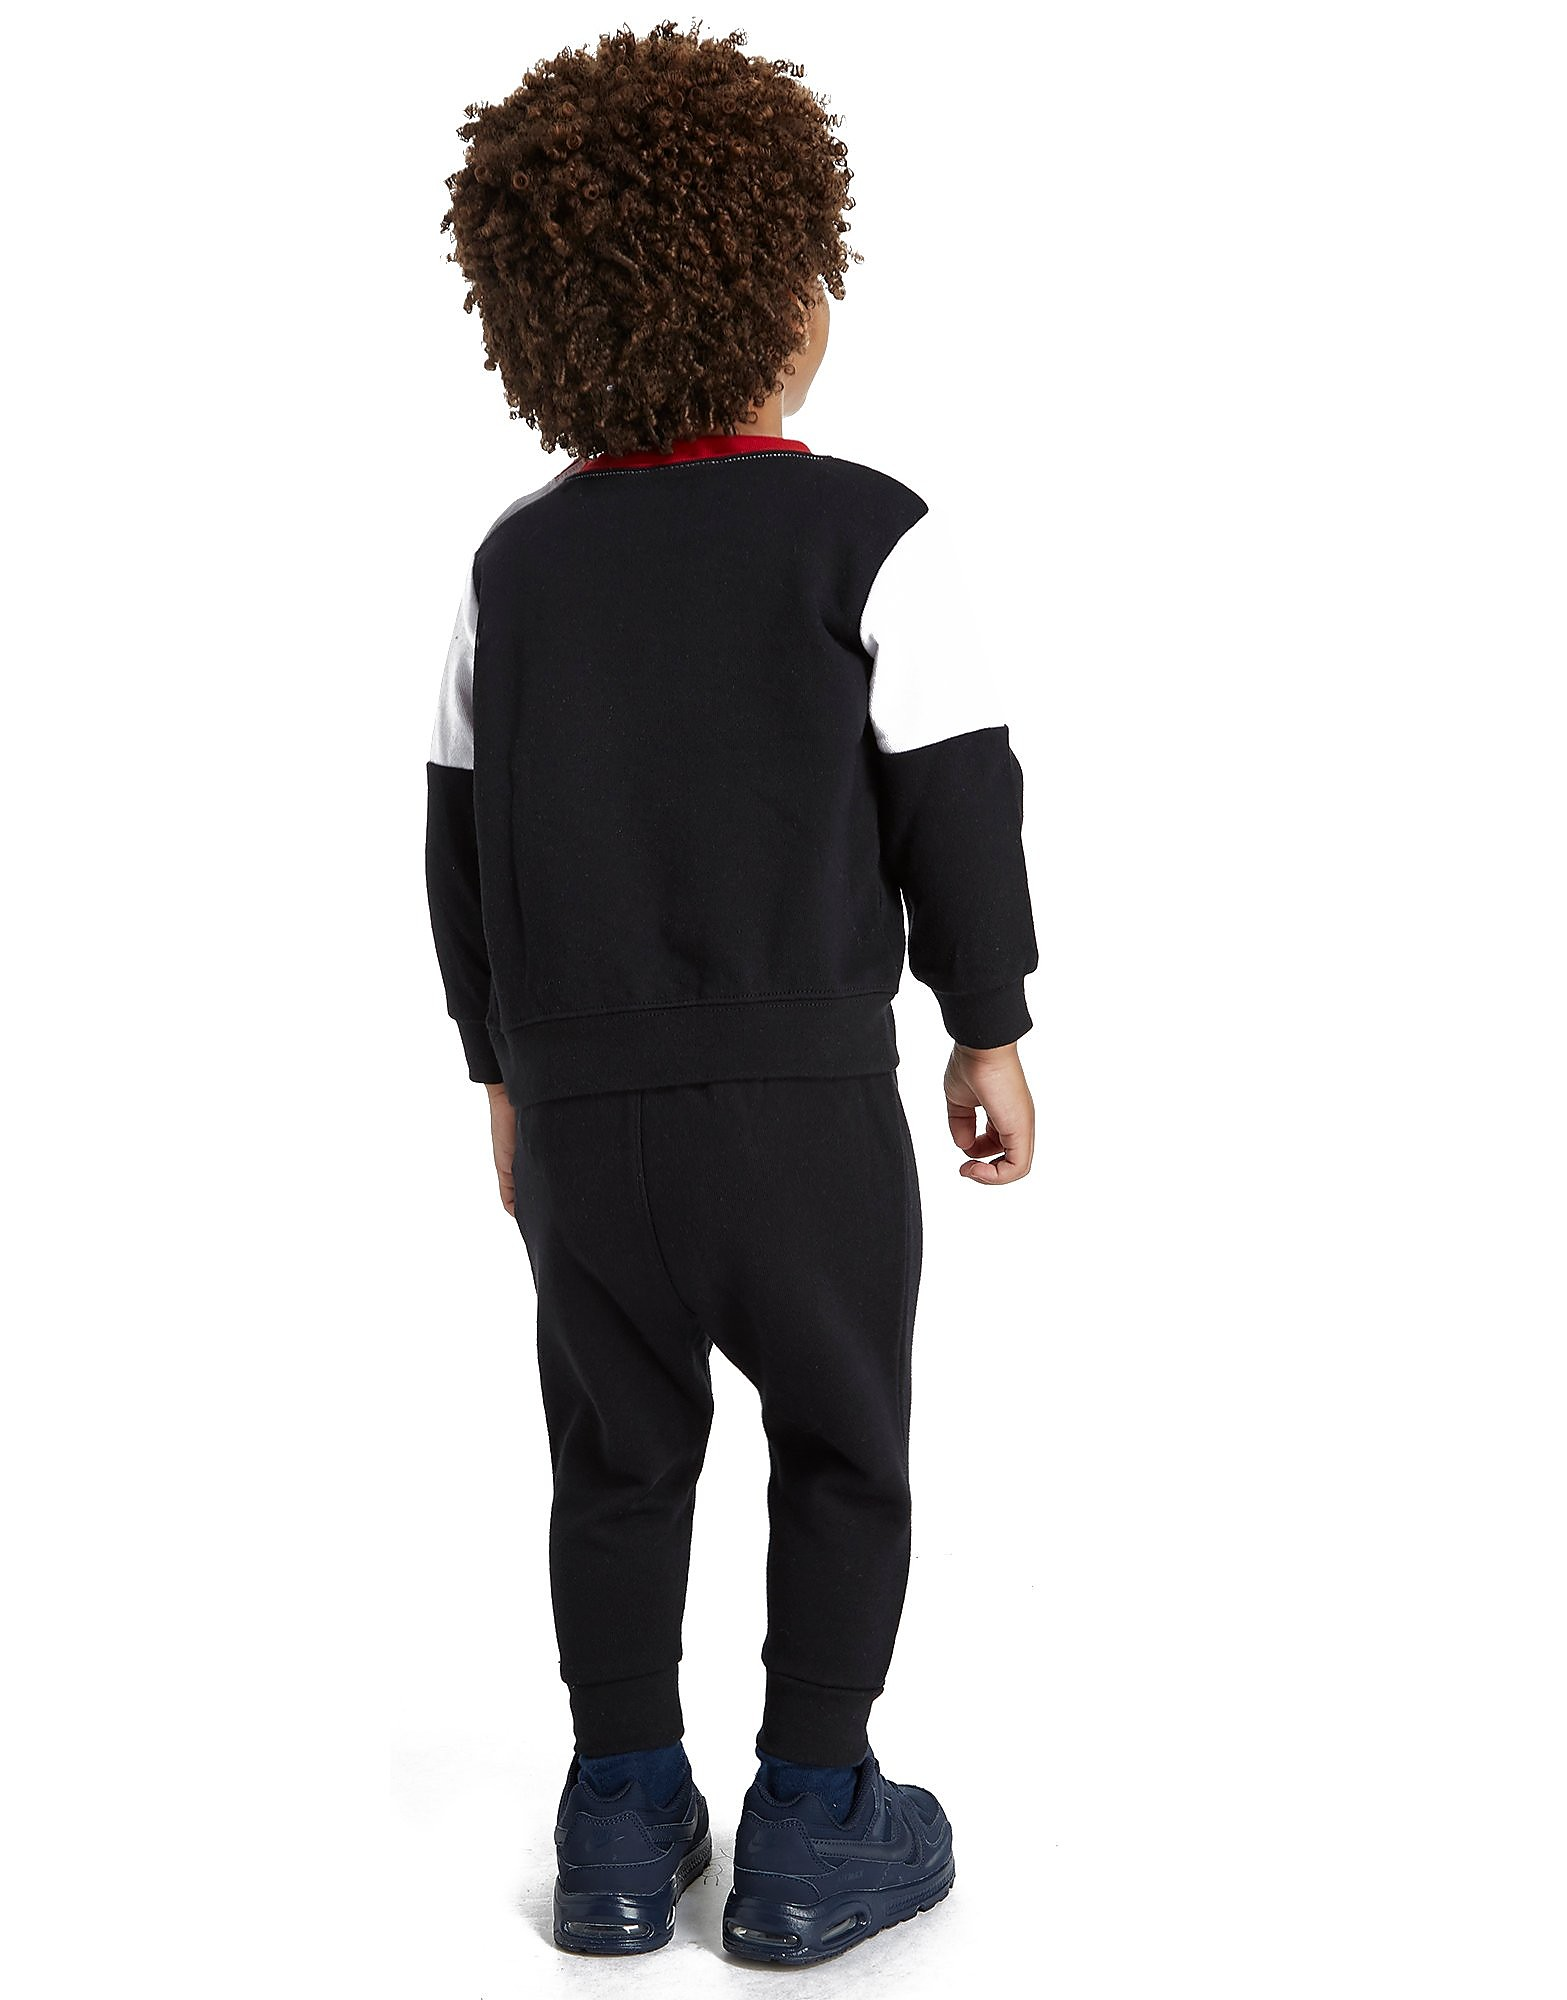 Jordan Wing It Crew Suit Infant